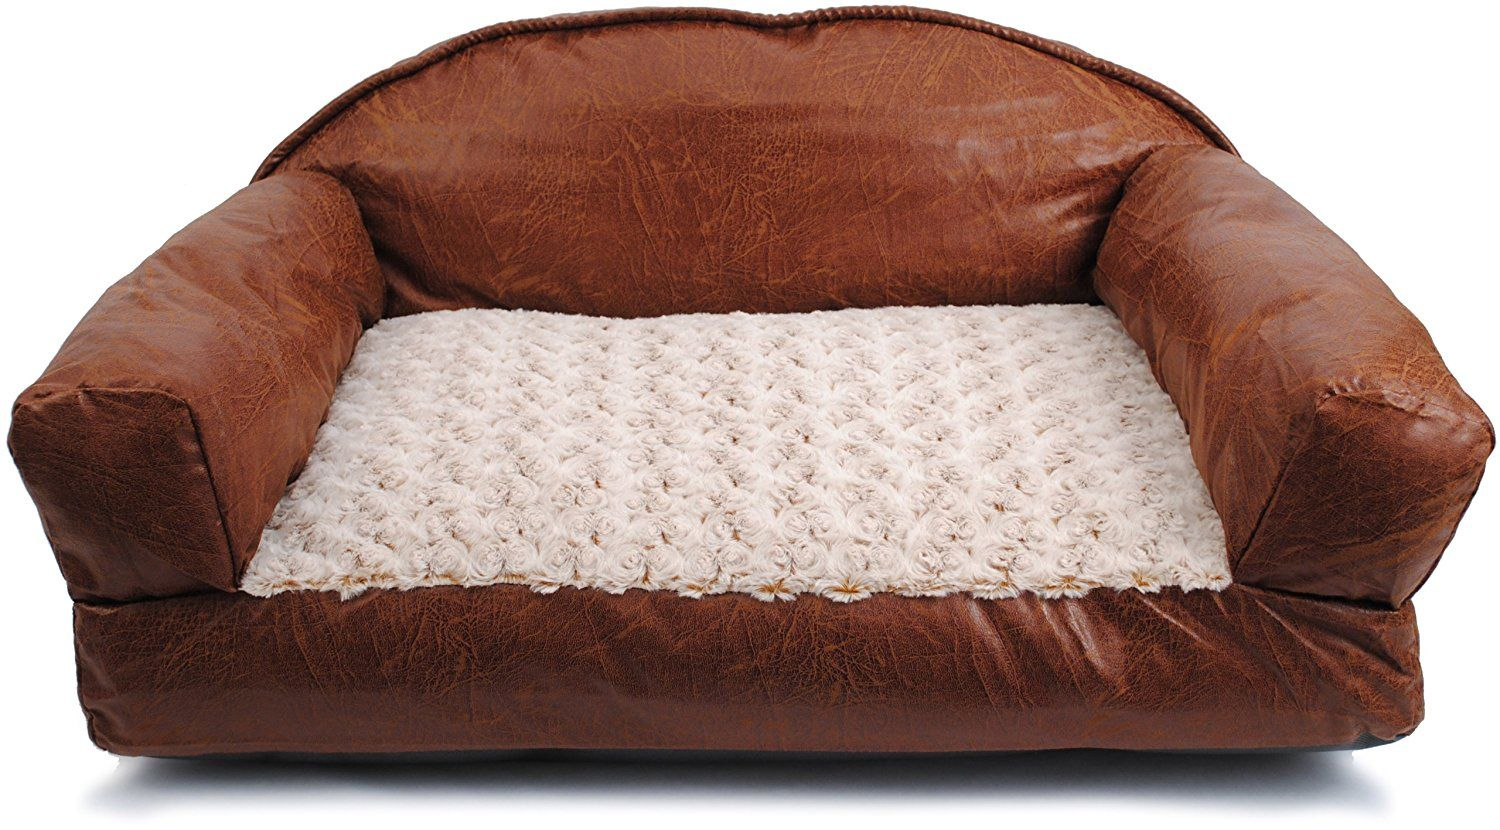 Faux Leather Dog Beds Faux Leather Dog Bed Leather Sofa Bed